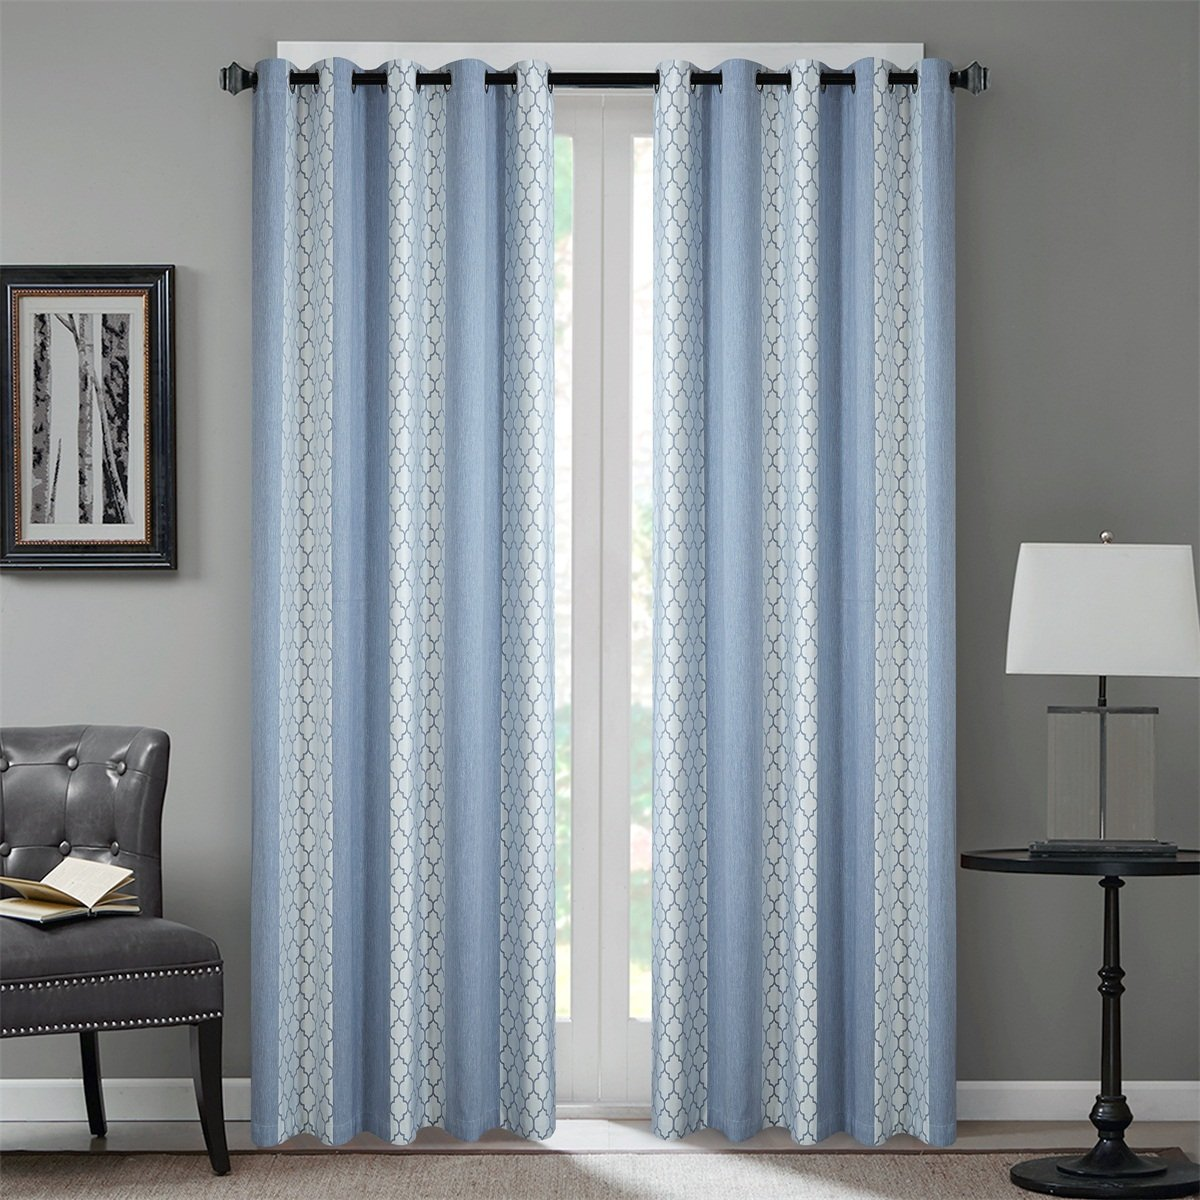 Dreaming Casa Room Darkening Extra Wide Window Curtains Grommet Top Window Treatment Moroccan Print Blackout Curtain for Bedroom Living Room Blue 63 Inches Long 100'' W x 63'' L (2 Panels)